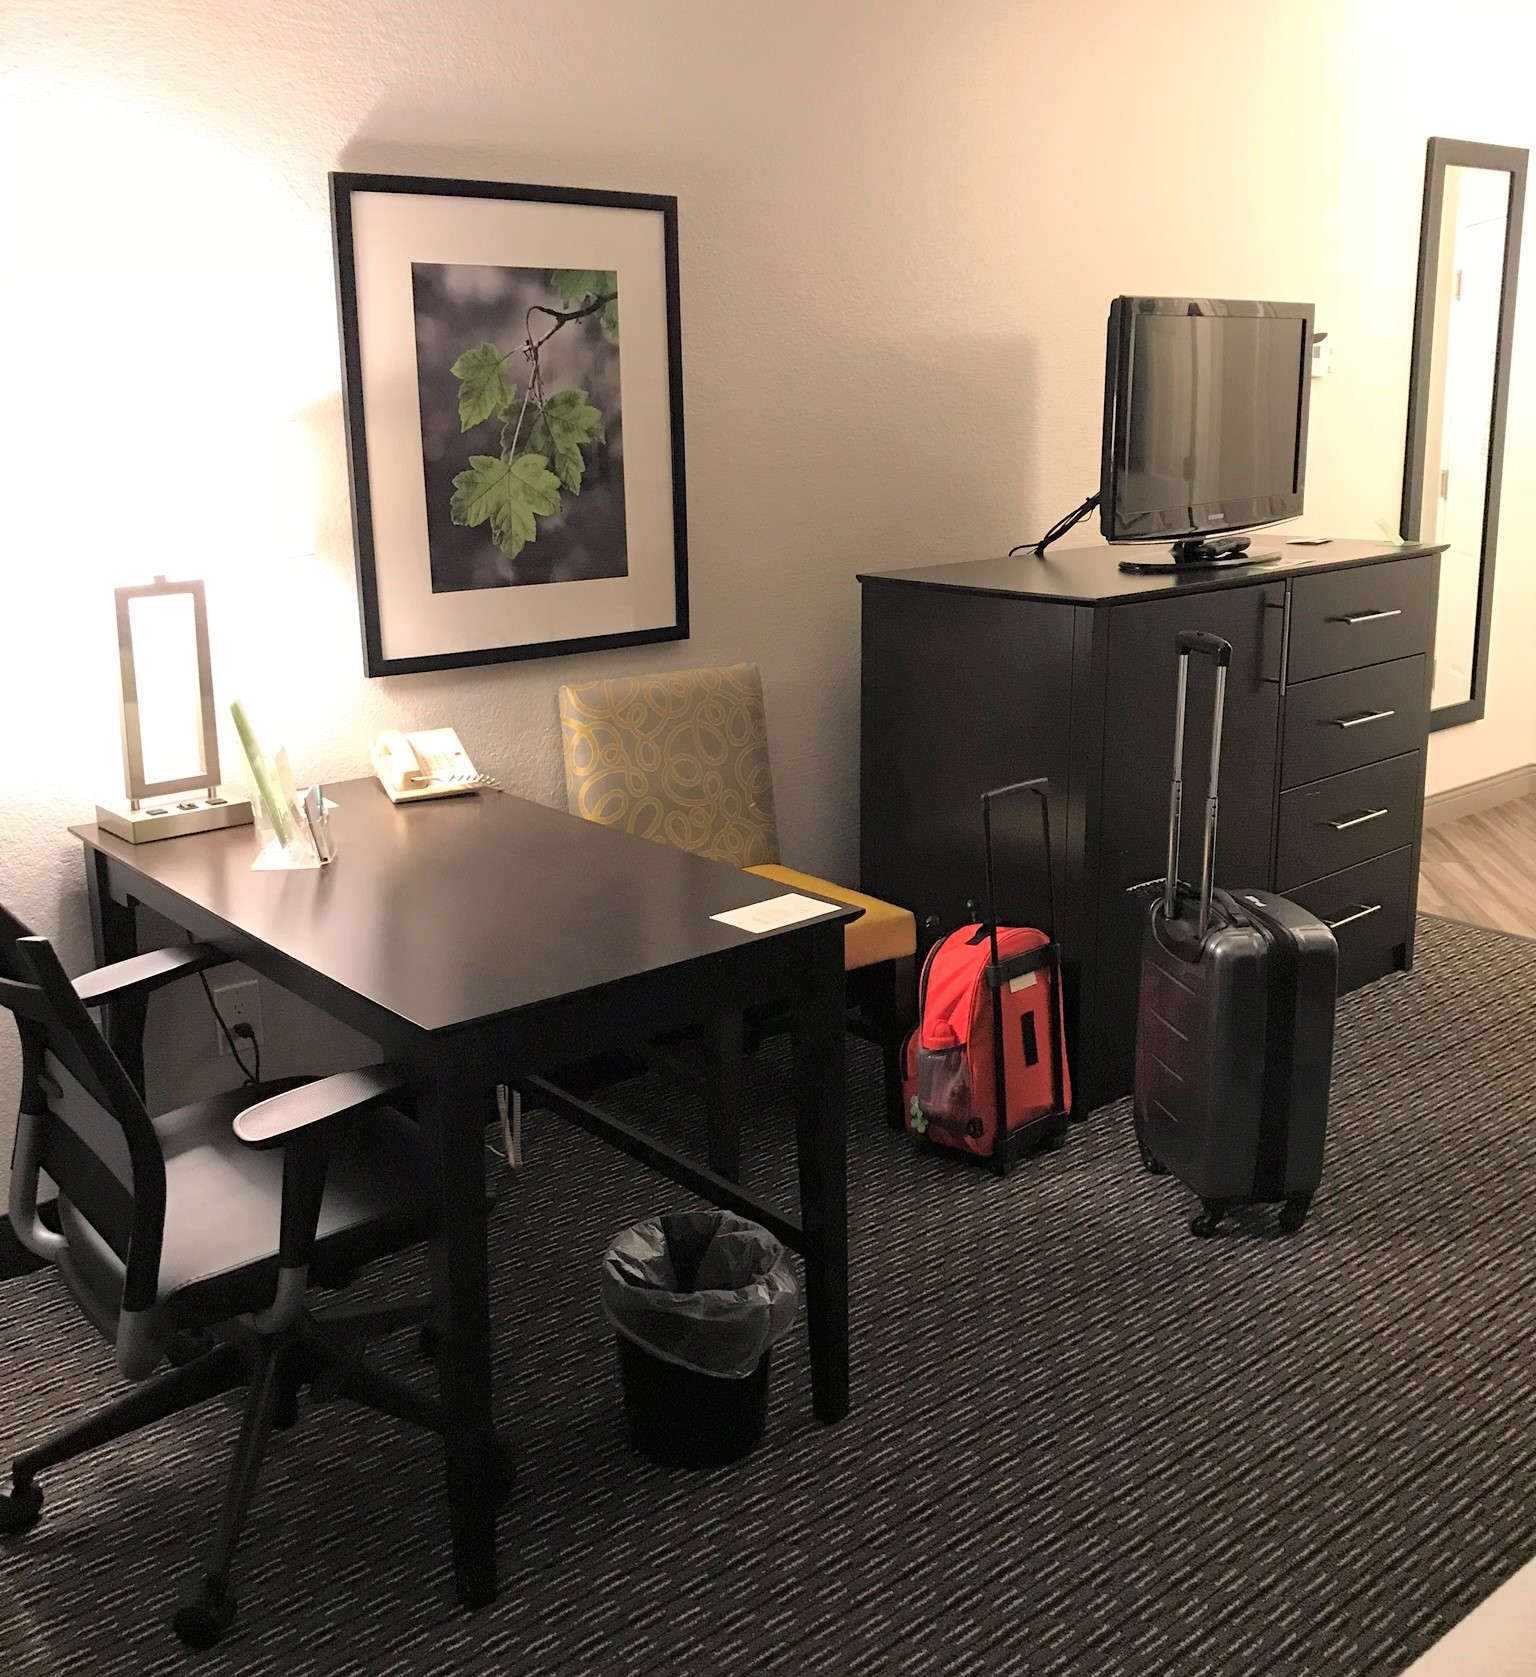 television and desk area in the hotel room